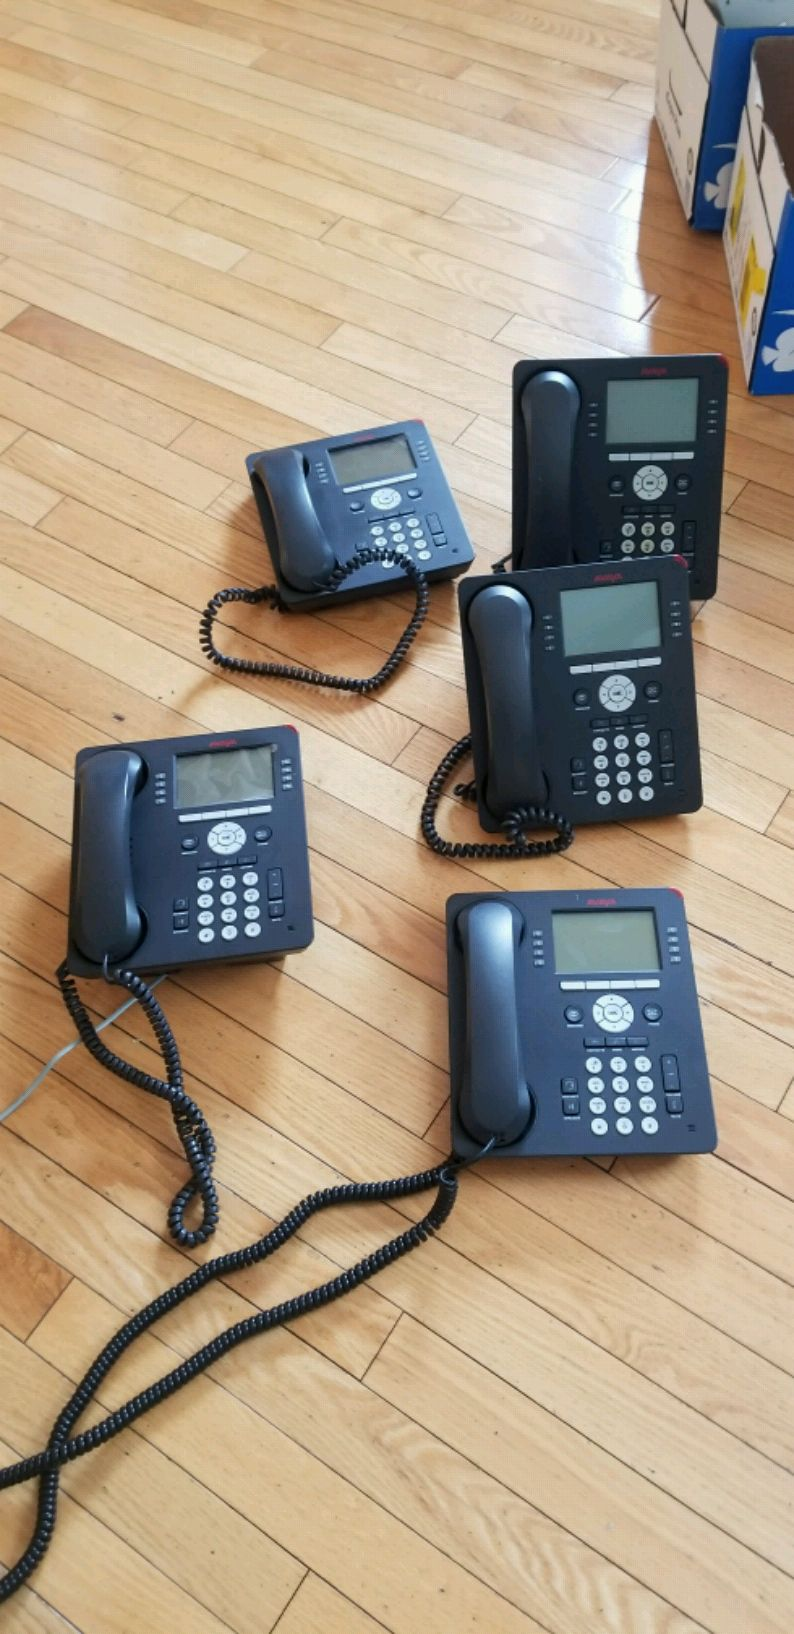 medium resolution of used avaya business ip office phone 5 phones wiring for sale in telephone wiring color code business phone wiring